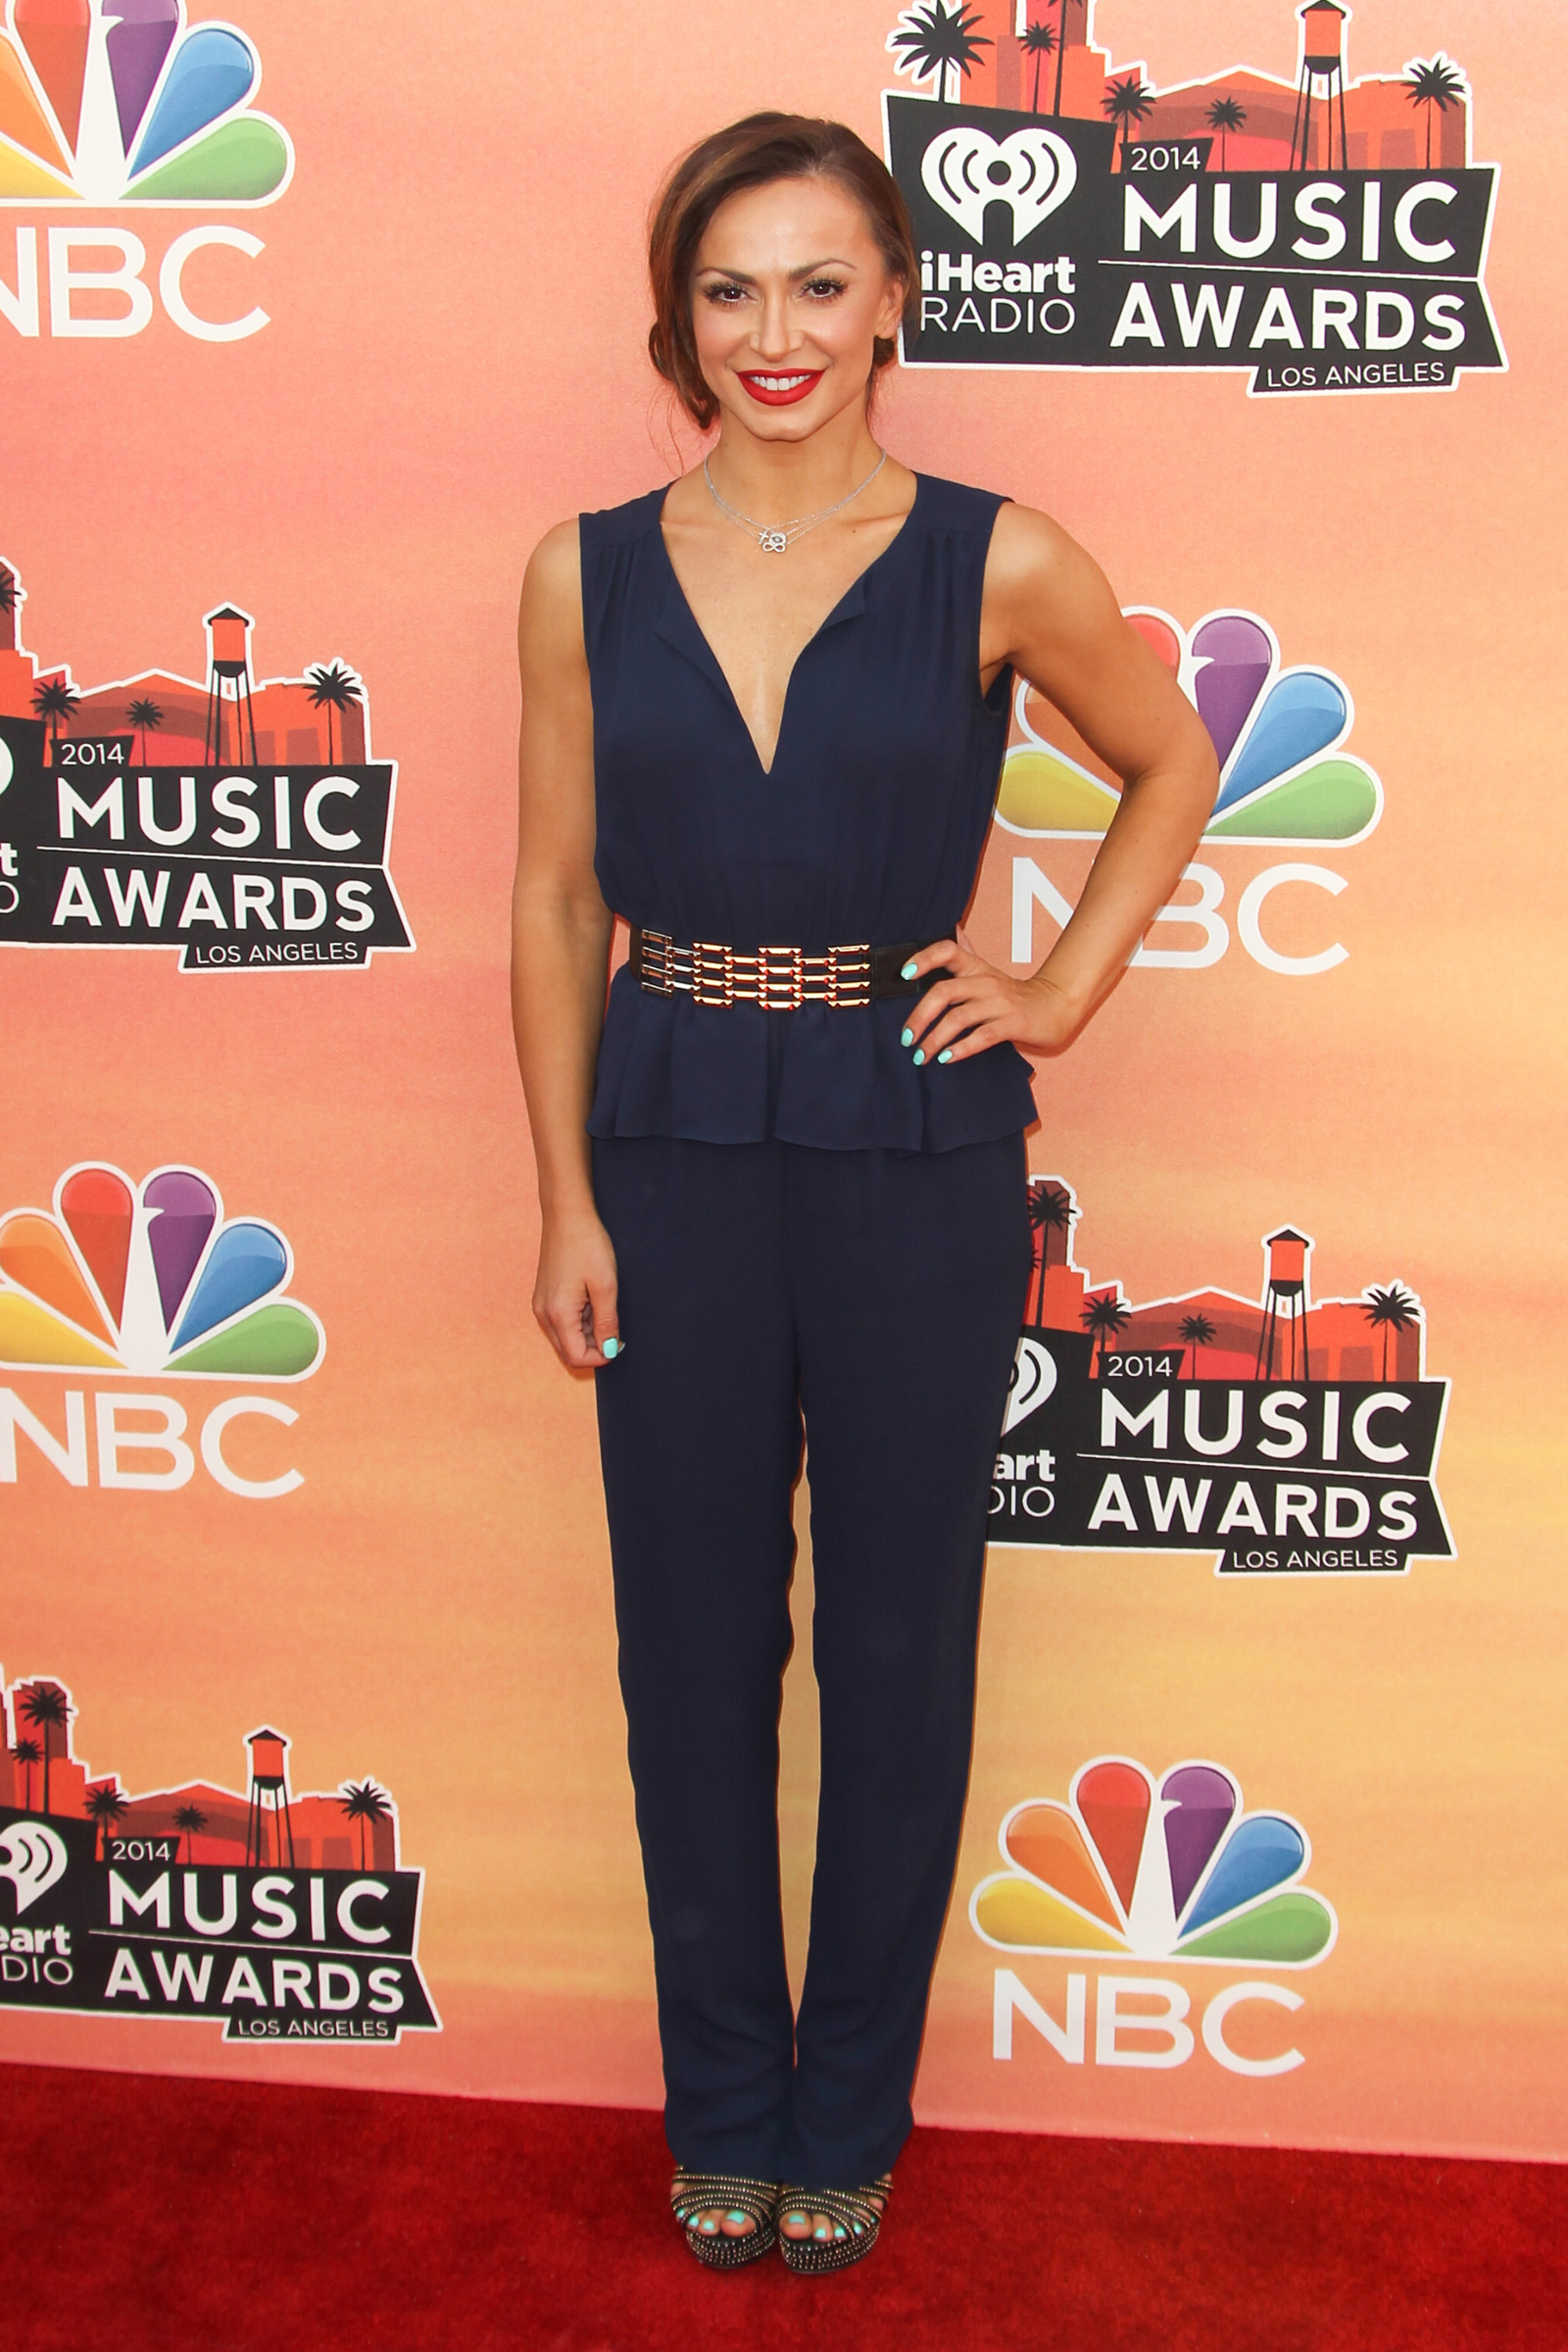 Karina Smirnoff at the 2014 iHeartRadio Music Awards